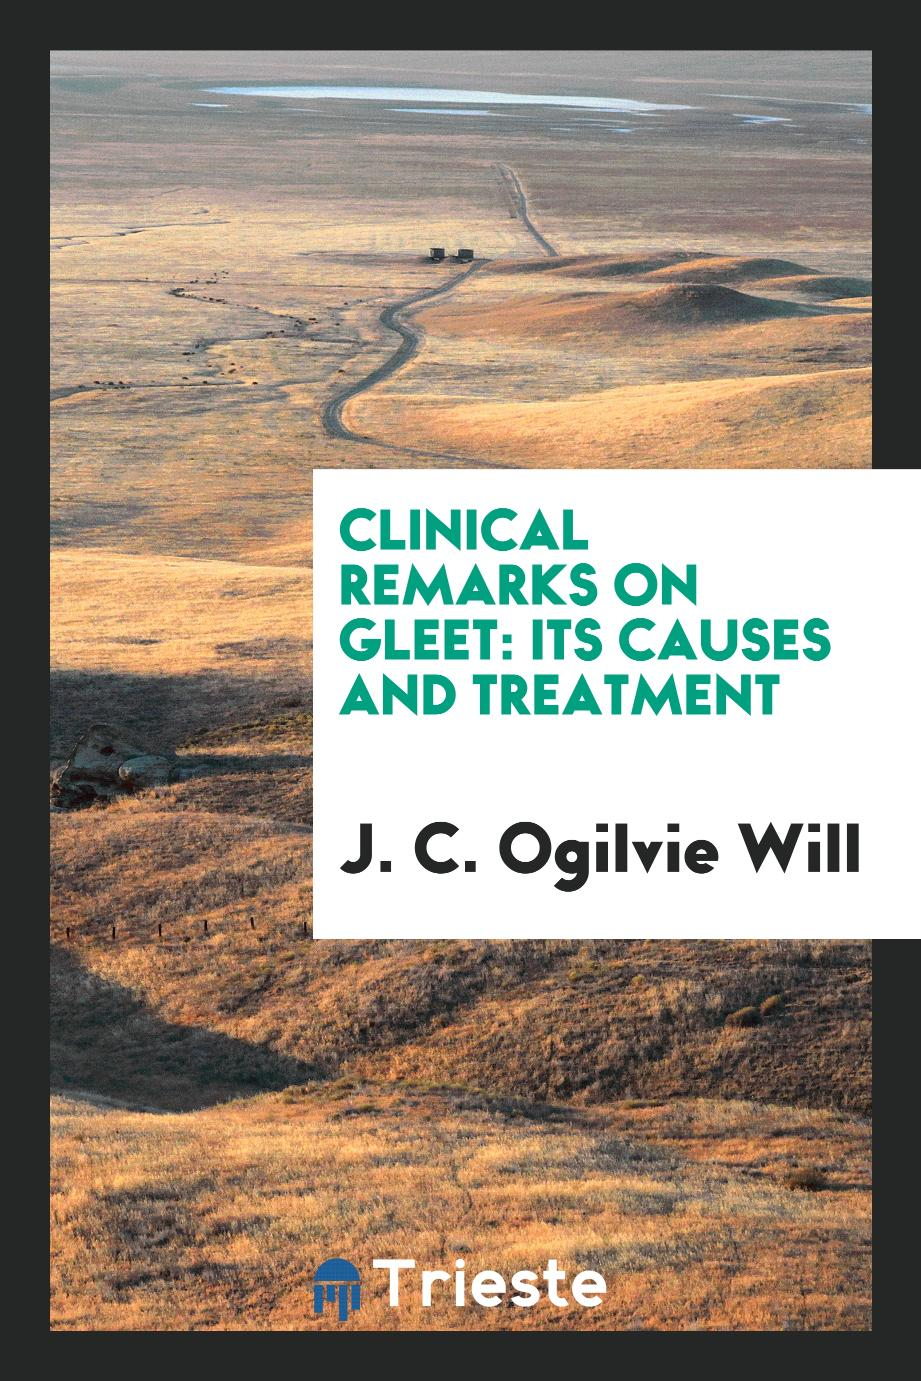 J. C. Ogilvie Will - Clinical remarks on gleet: its causes and treatment